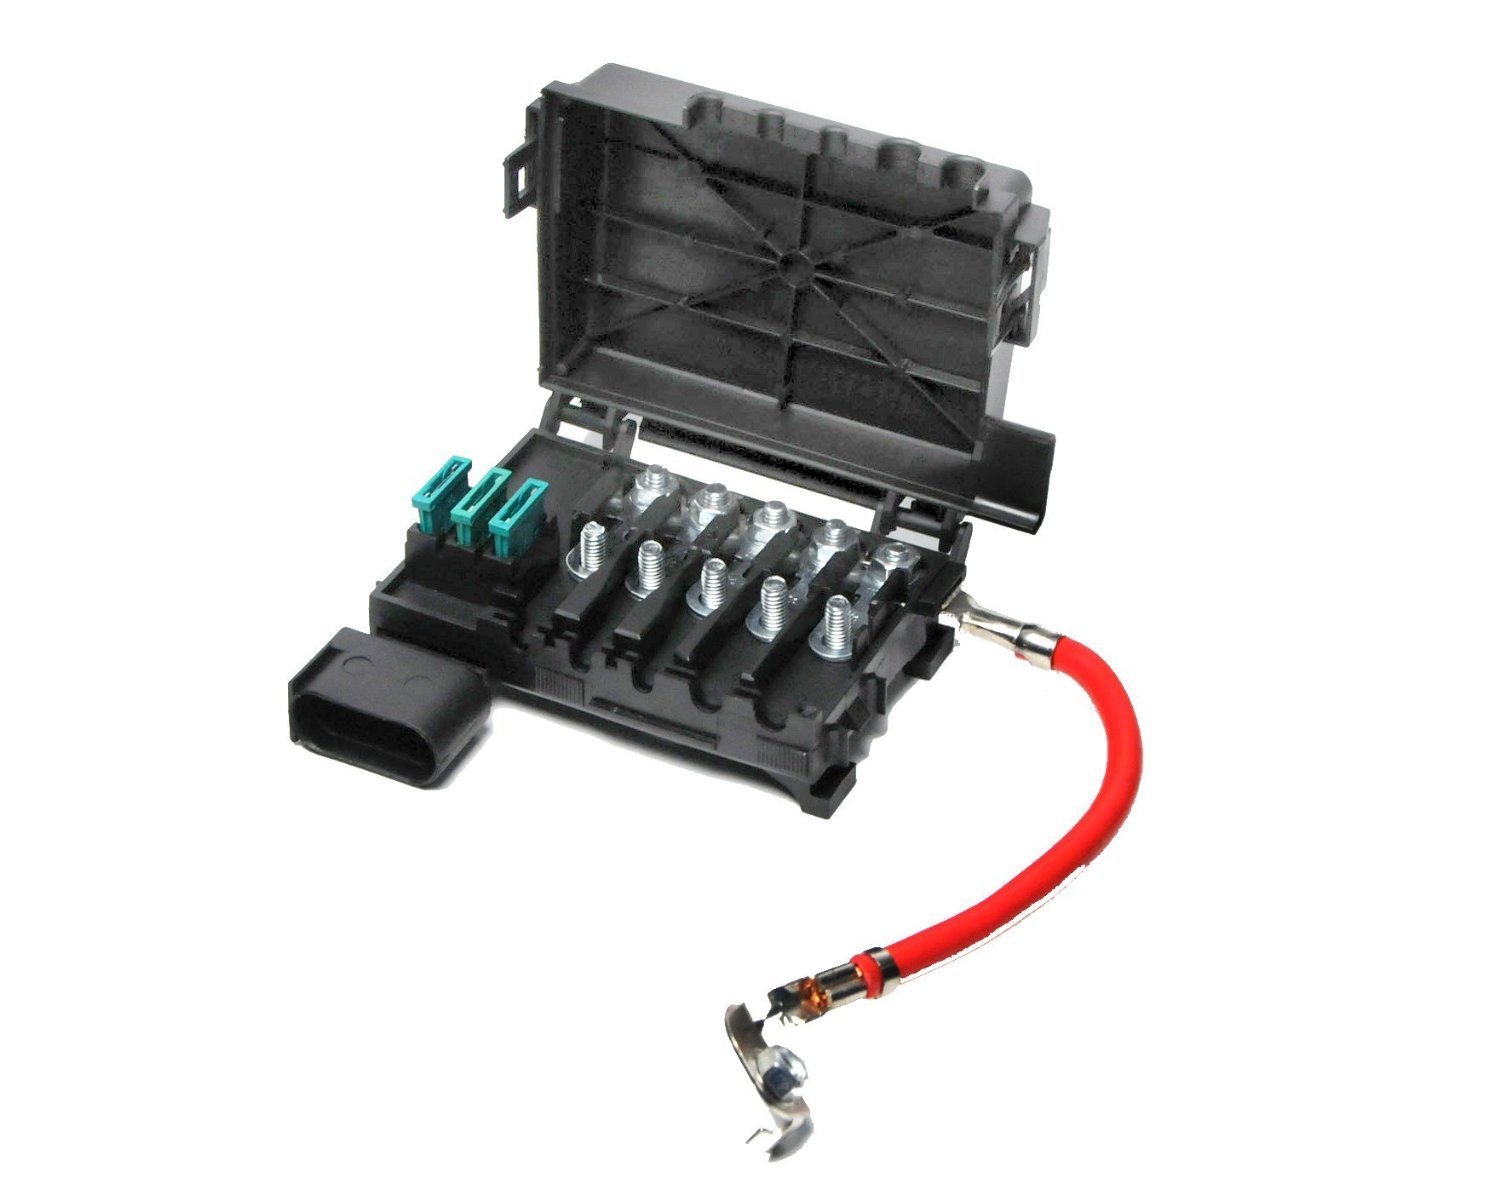 Amazon.com: LOOYUAN 1J0-937-617D Fuse Box For Volkswagen Golf Jetta Beetle:  Automotive